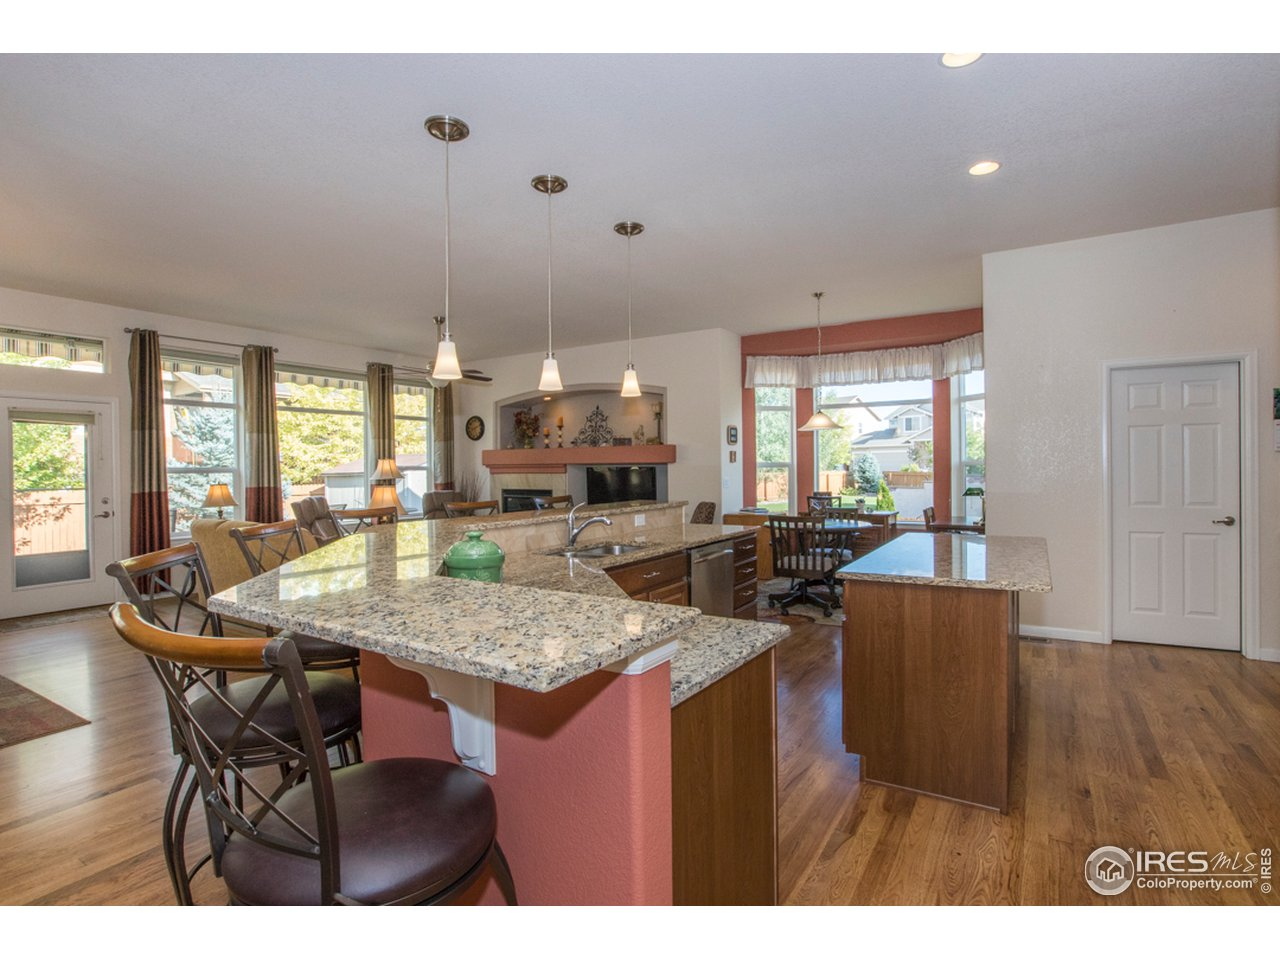 Notice the size of this kitchen